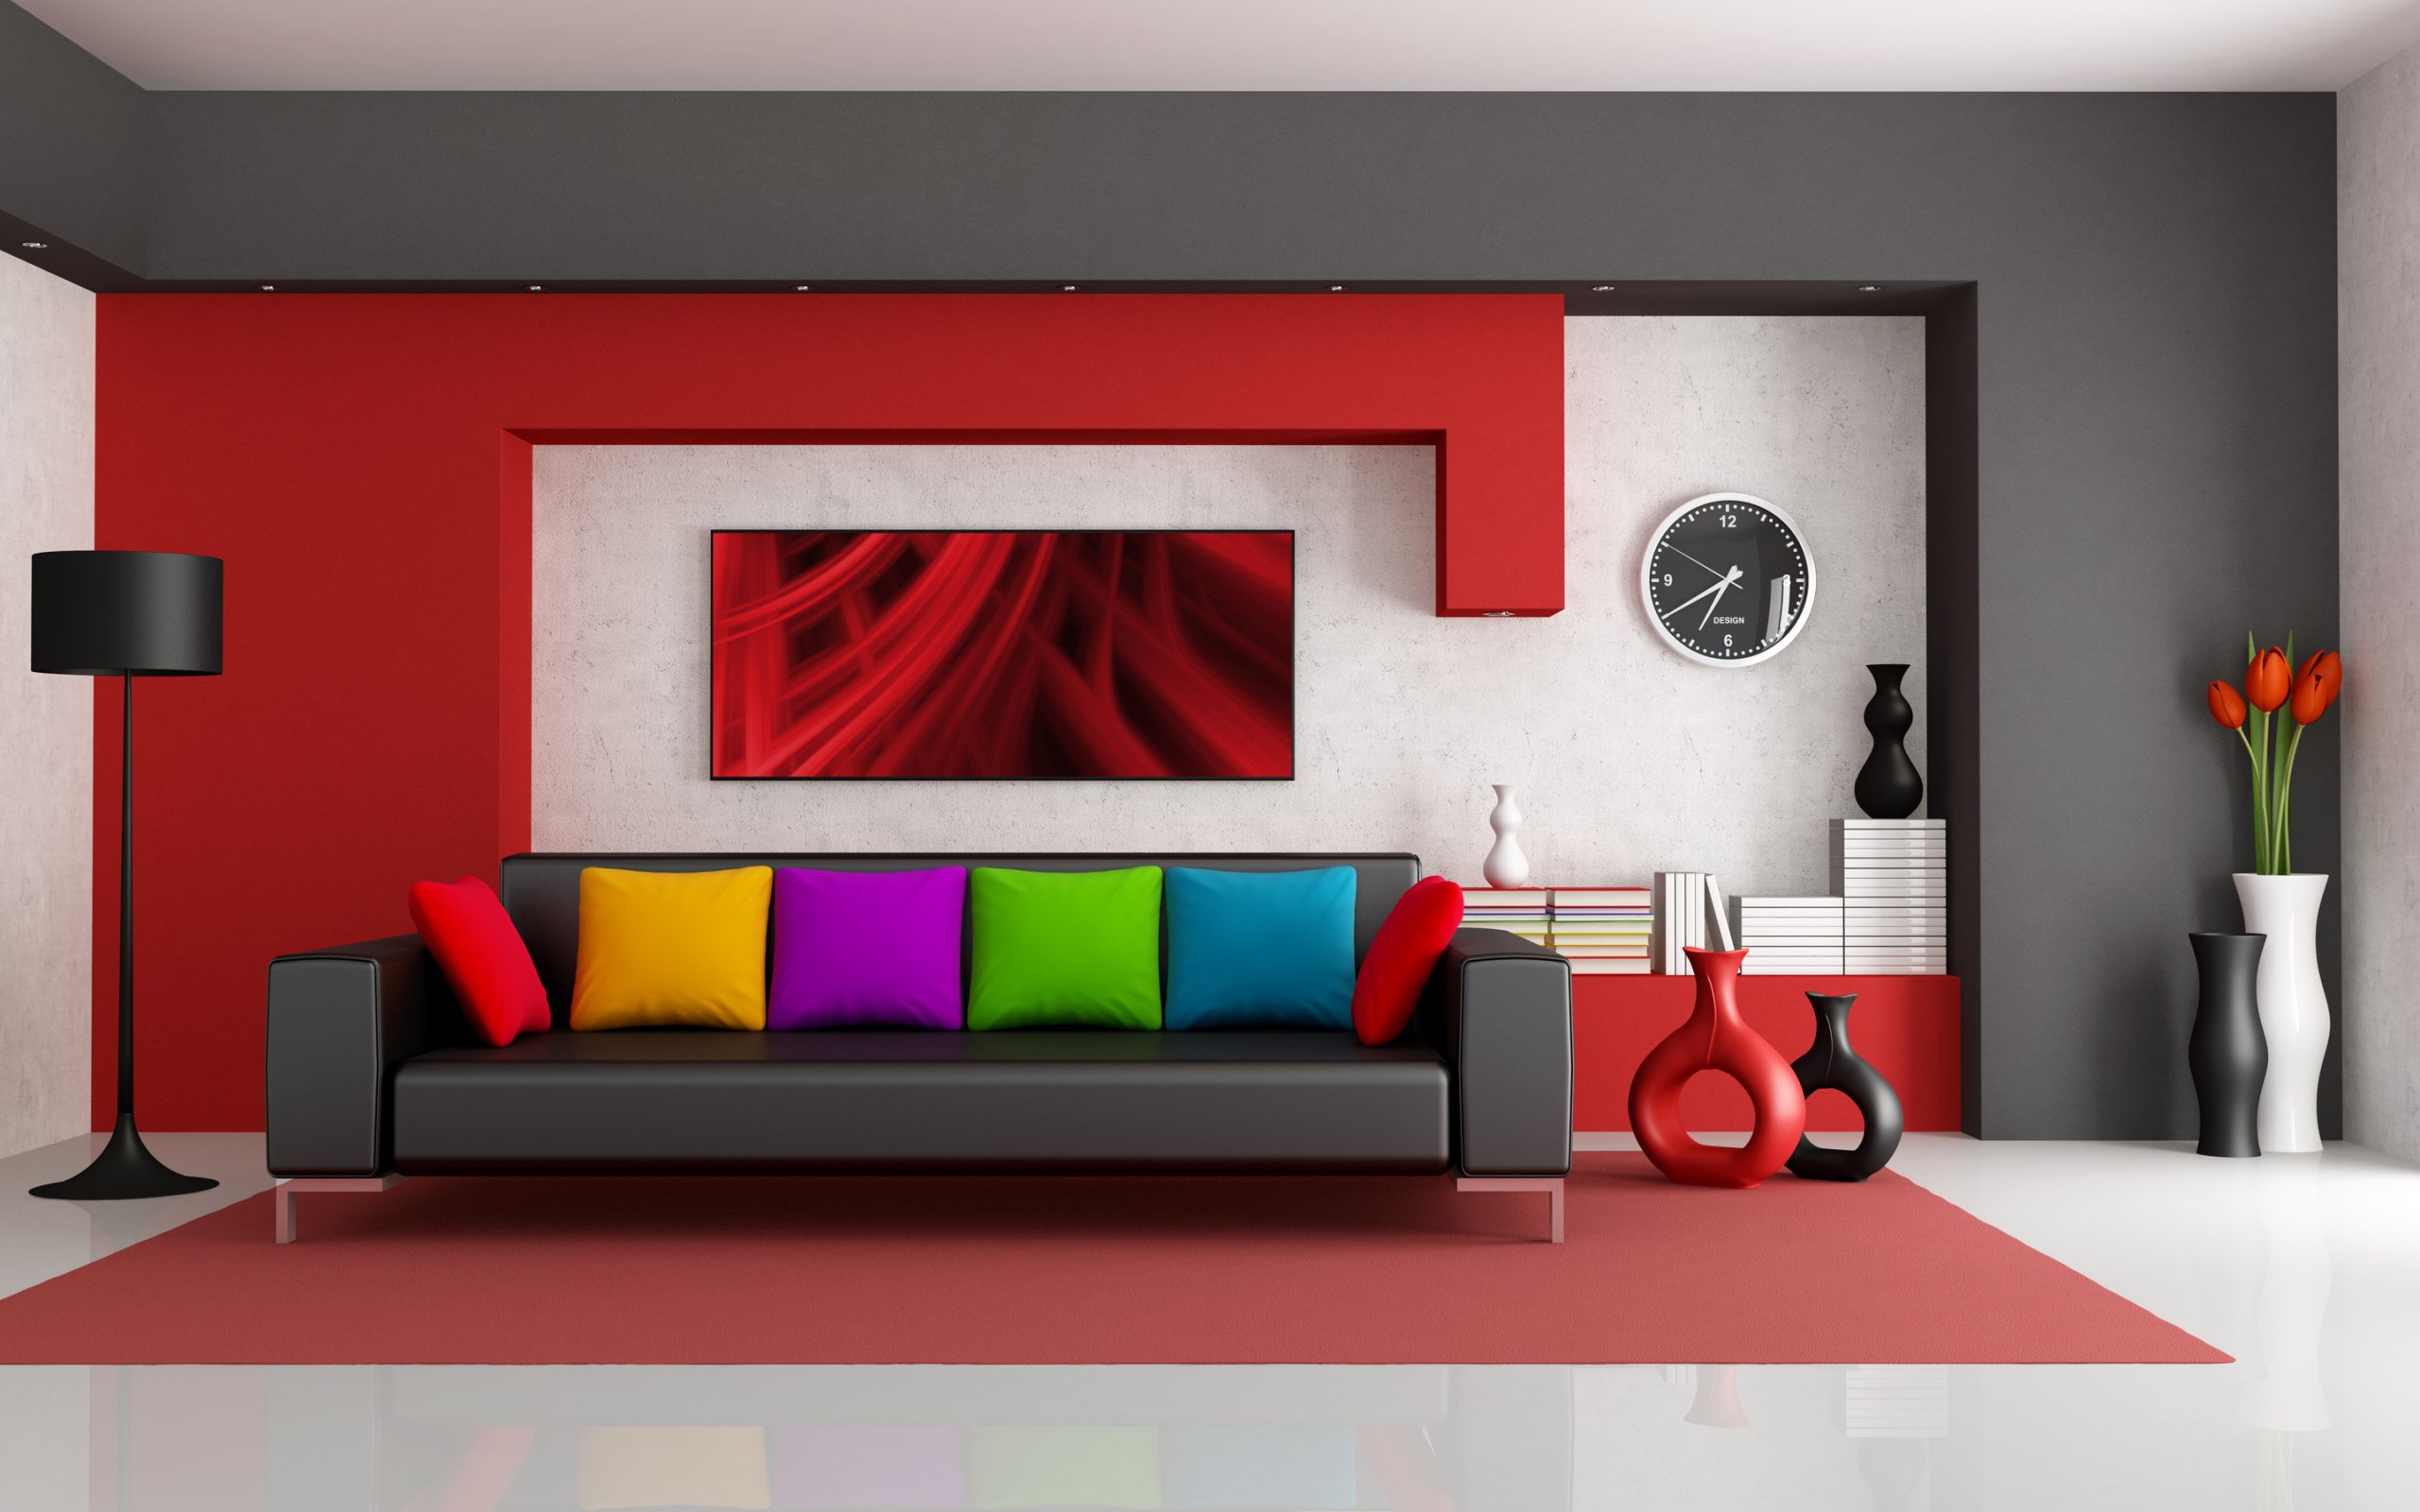 Interior design wallpapers movie hd wallpapers for Interior design hd